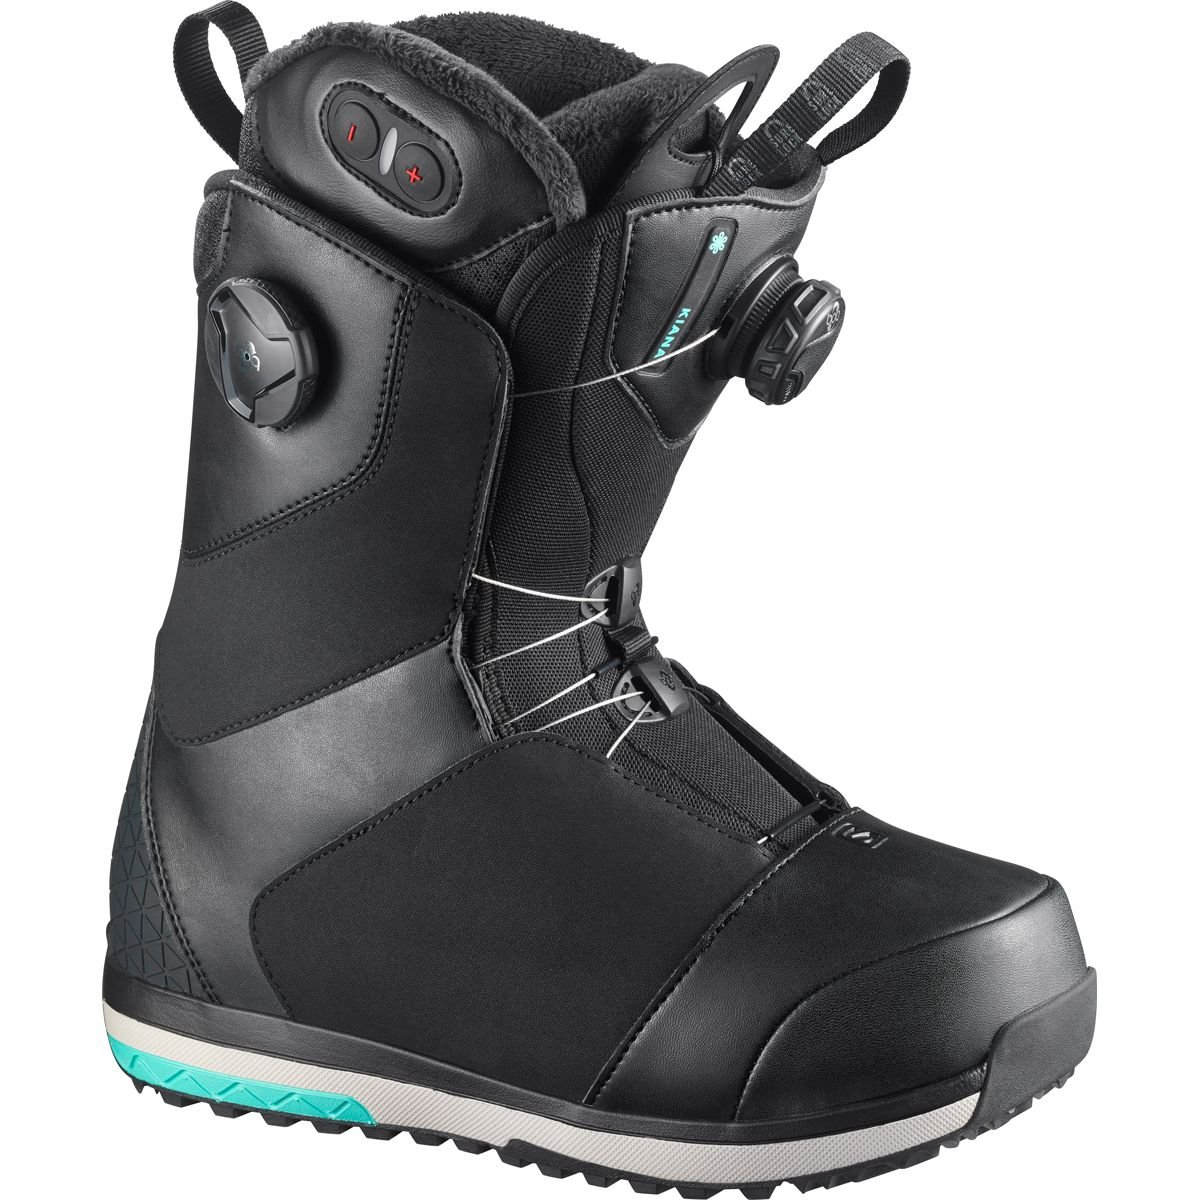 Salomon Snowboards Kiana Toast Focus Boa Snowboard Boot - Women's Black, 7.0 by Salomon Snowboards